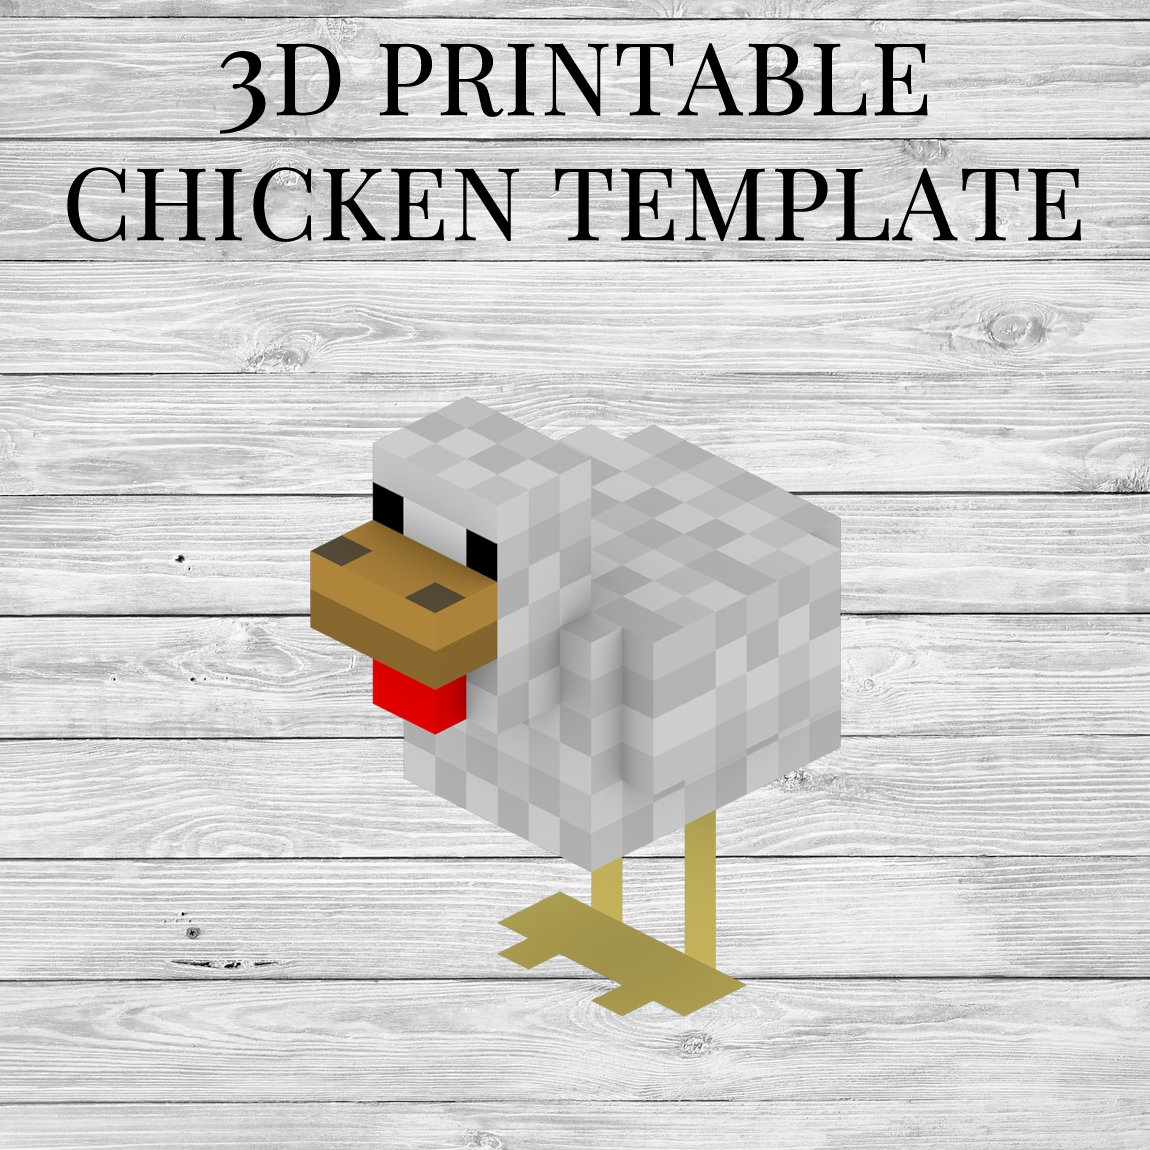 photograph regarding Chicken Stencil Printable named 3D Printable Minecraft Chook Template